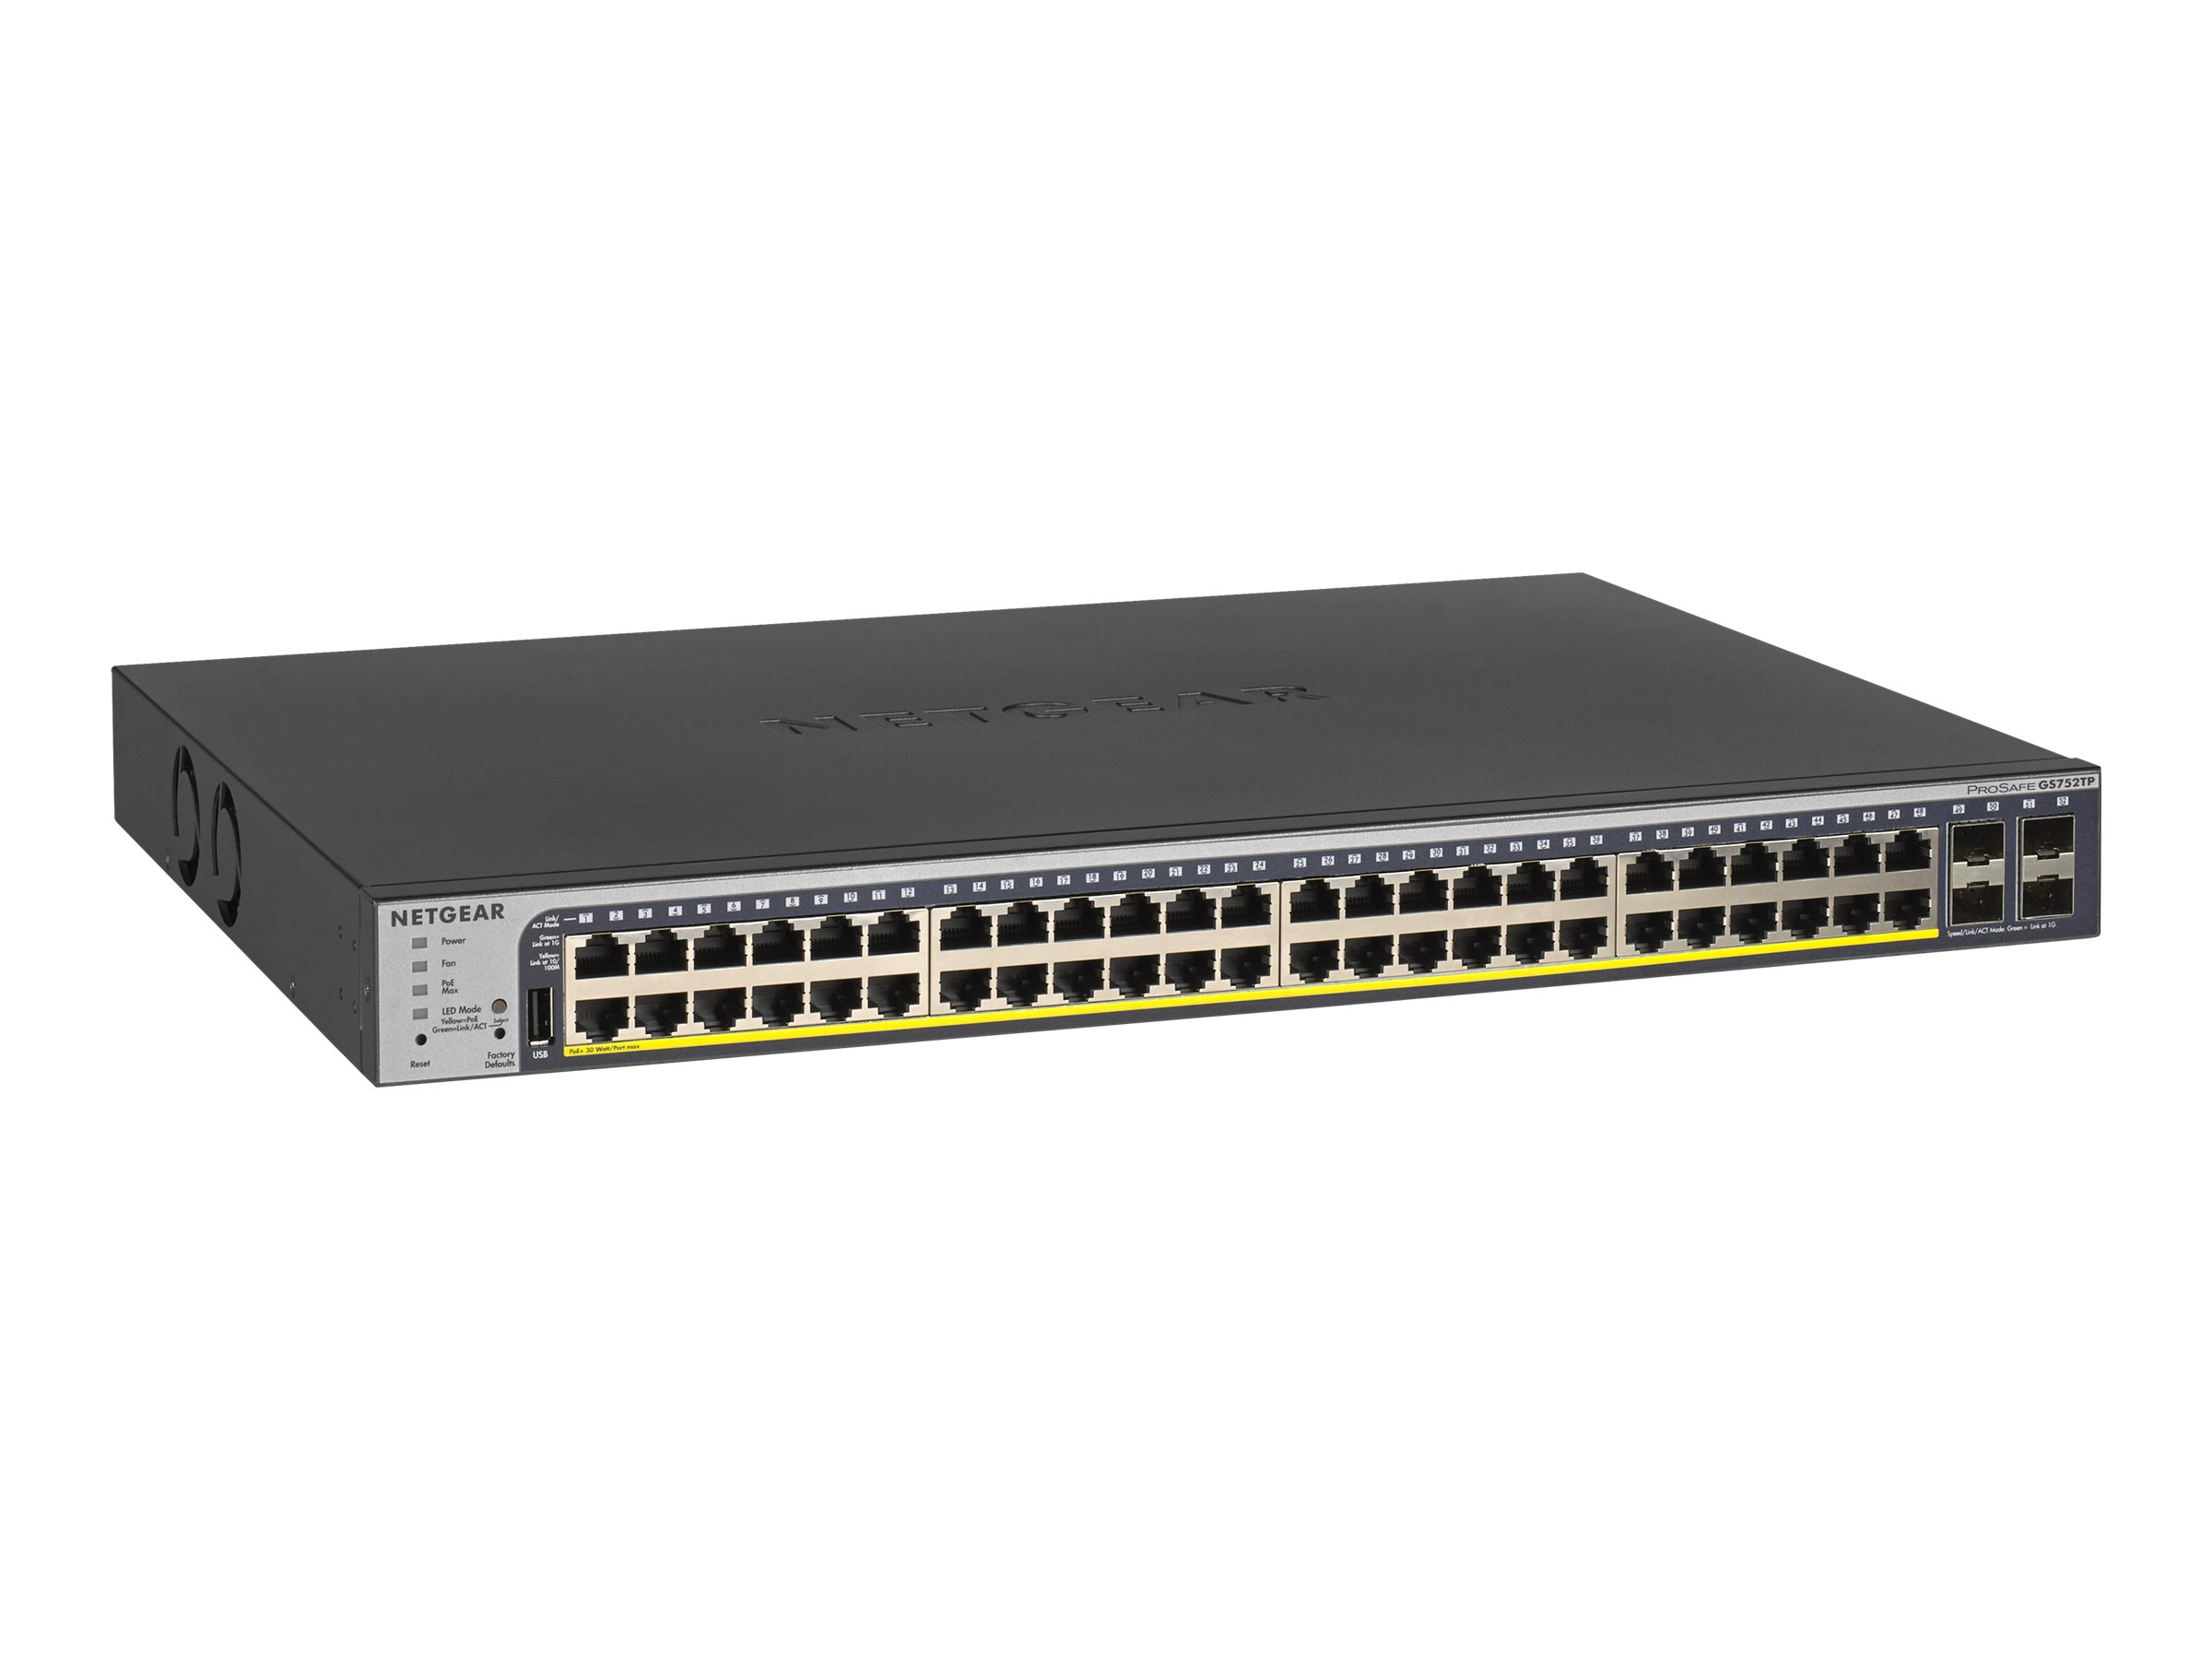 NETGEAR Smart GS752TP - v2 - switch - 48 ports - smart - rack-mountable